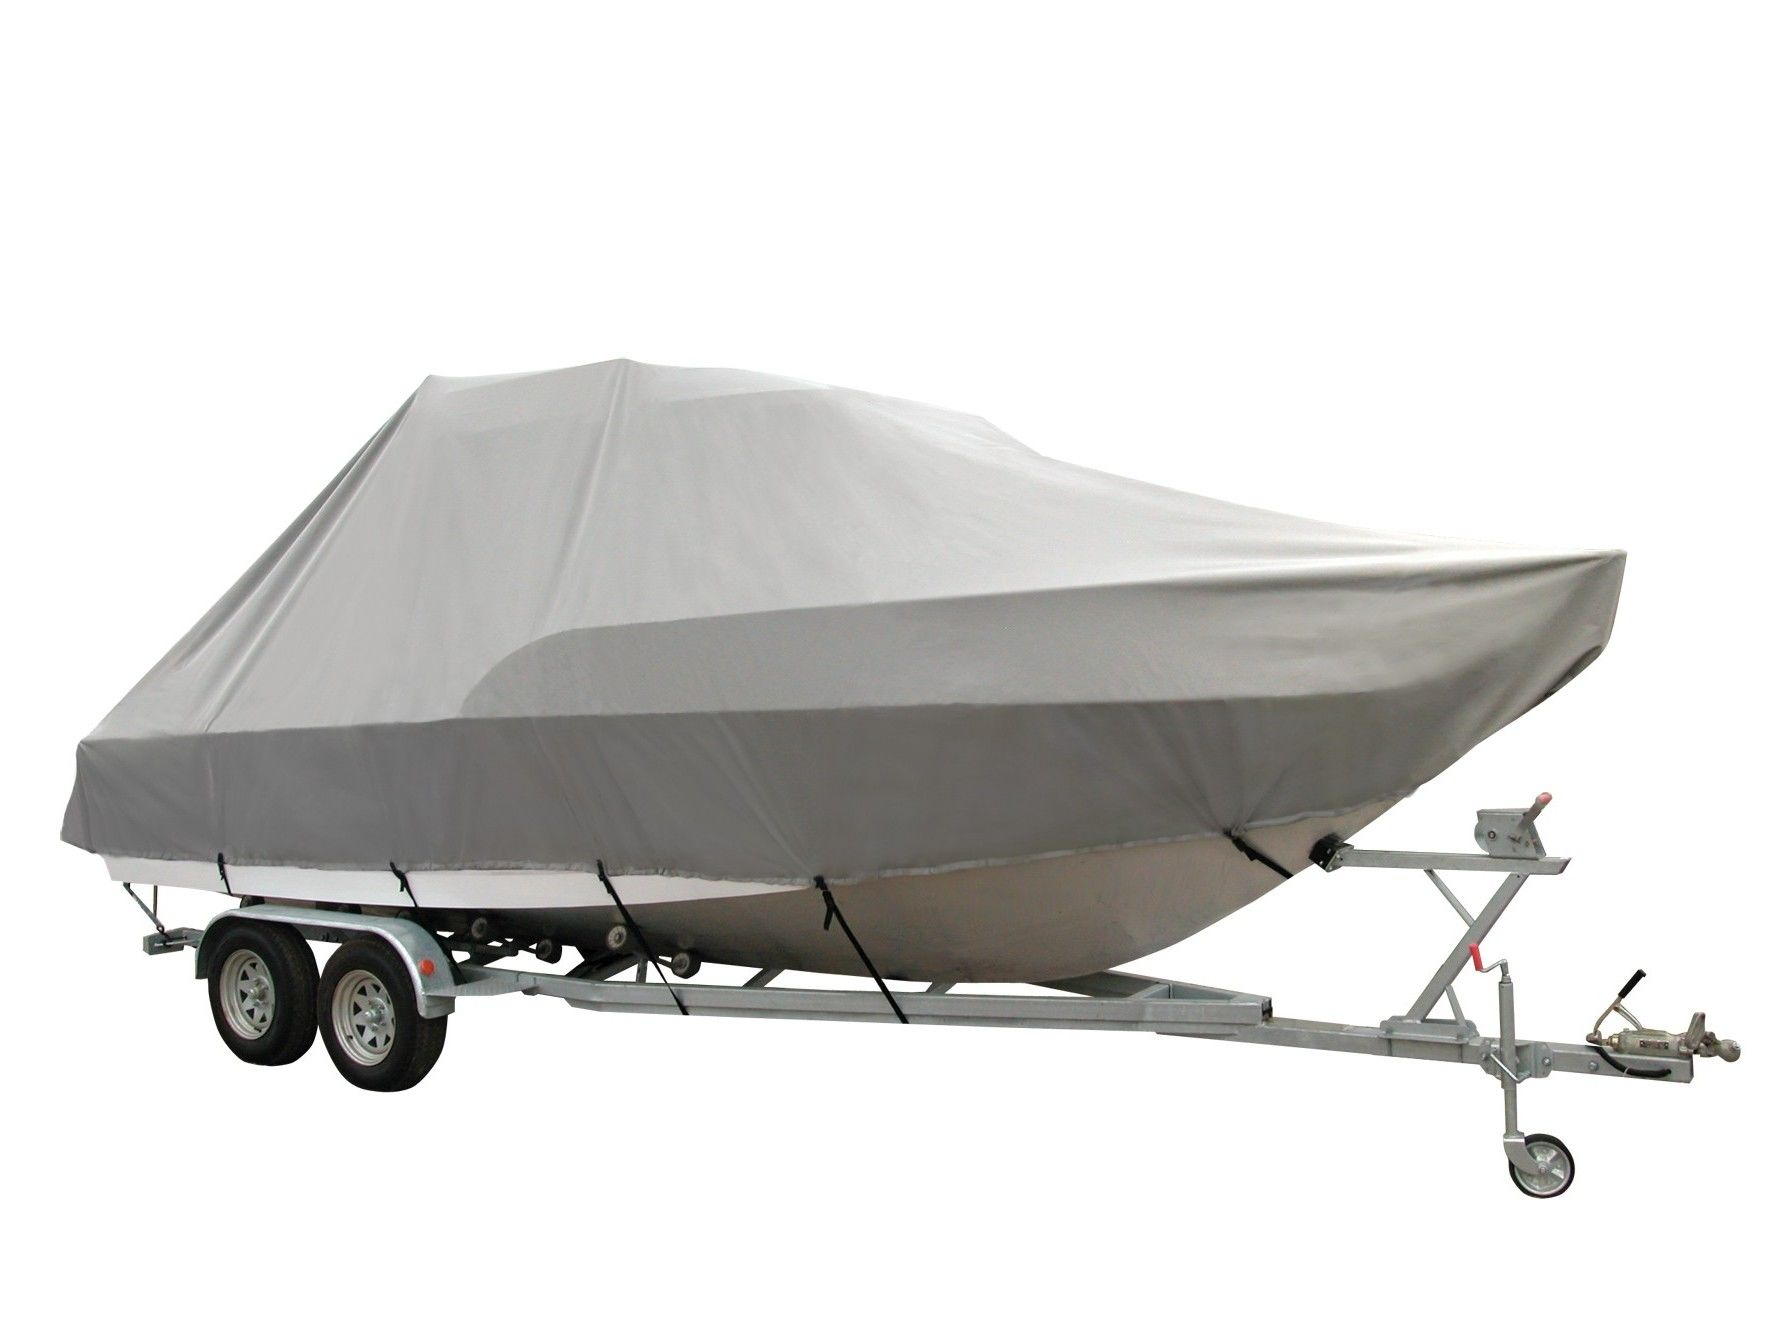 Awning For Boat-6.4-7.0 M MA5012